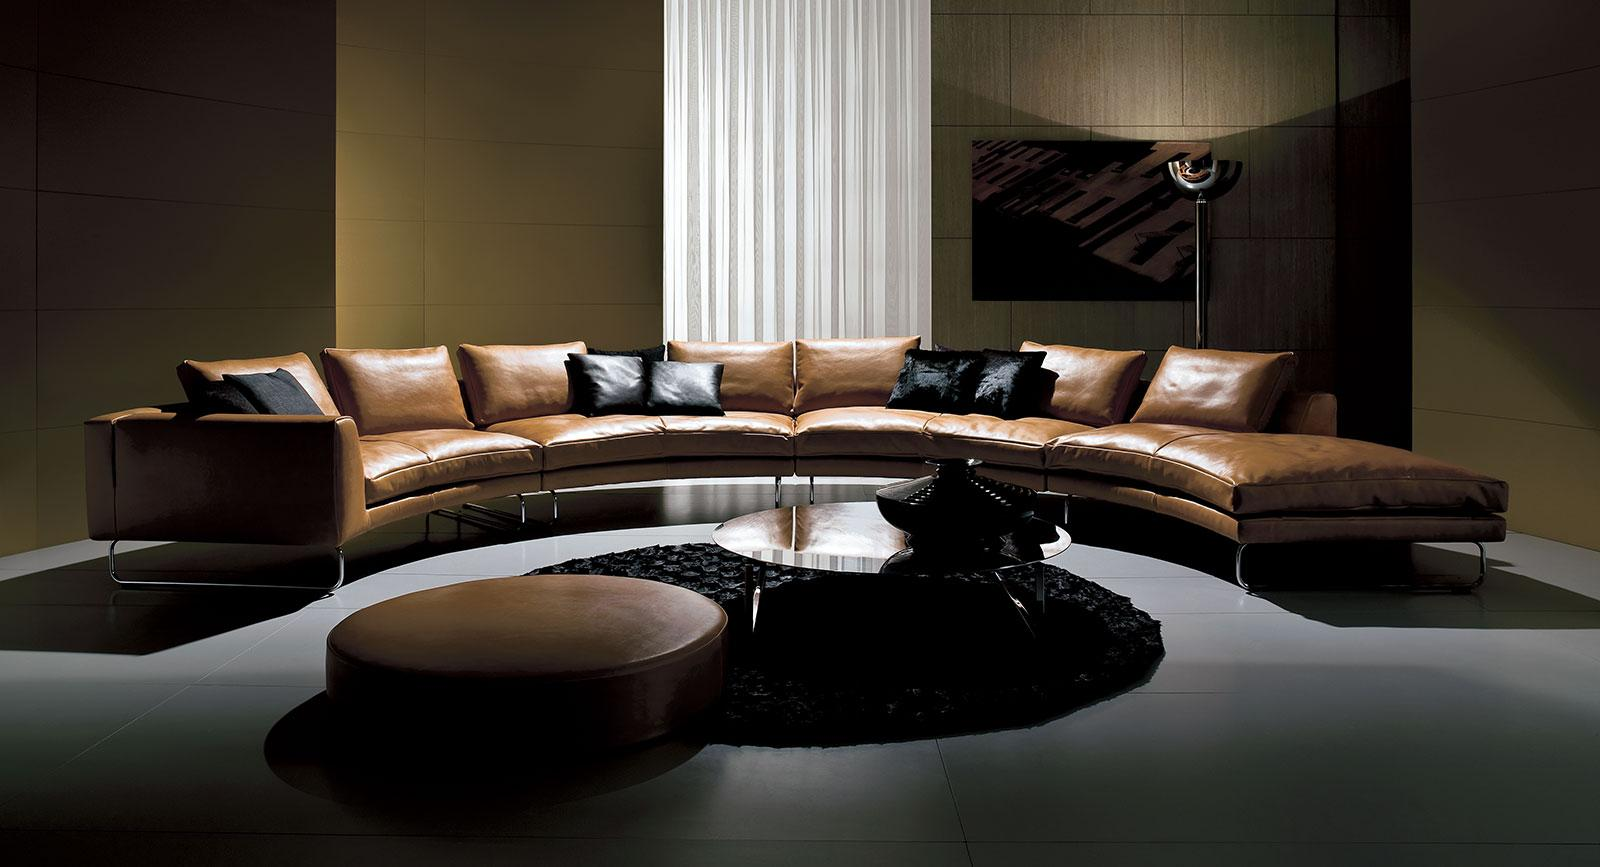 Sofa leather modular delivery online couch furniture store shop design factor sale home homestore house market